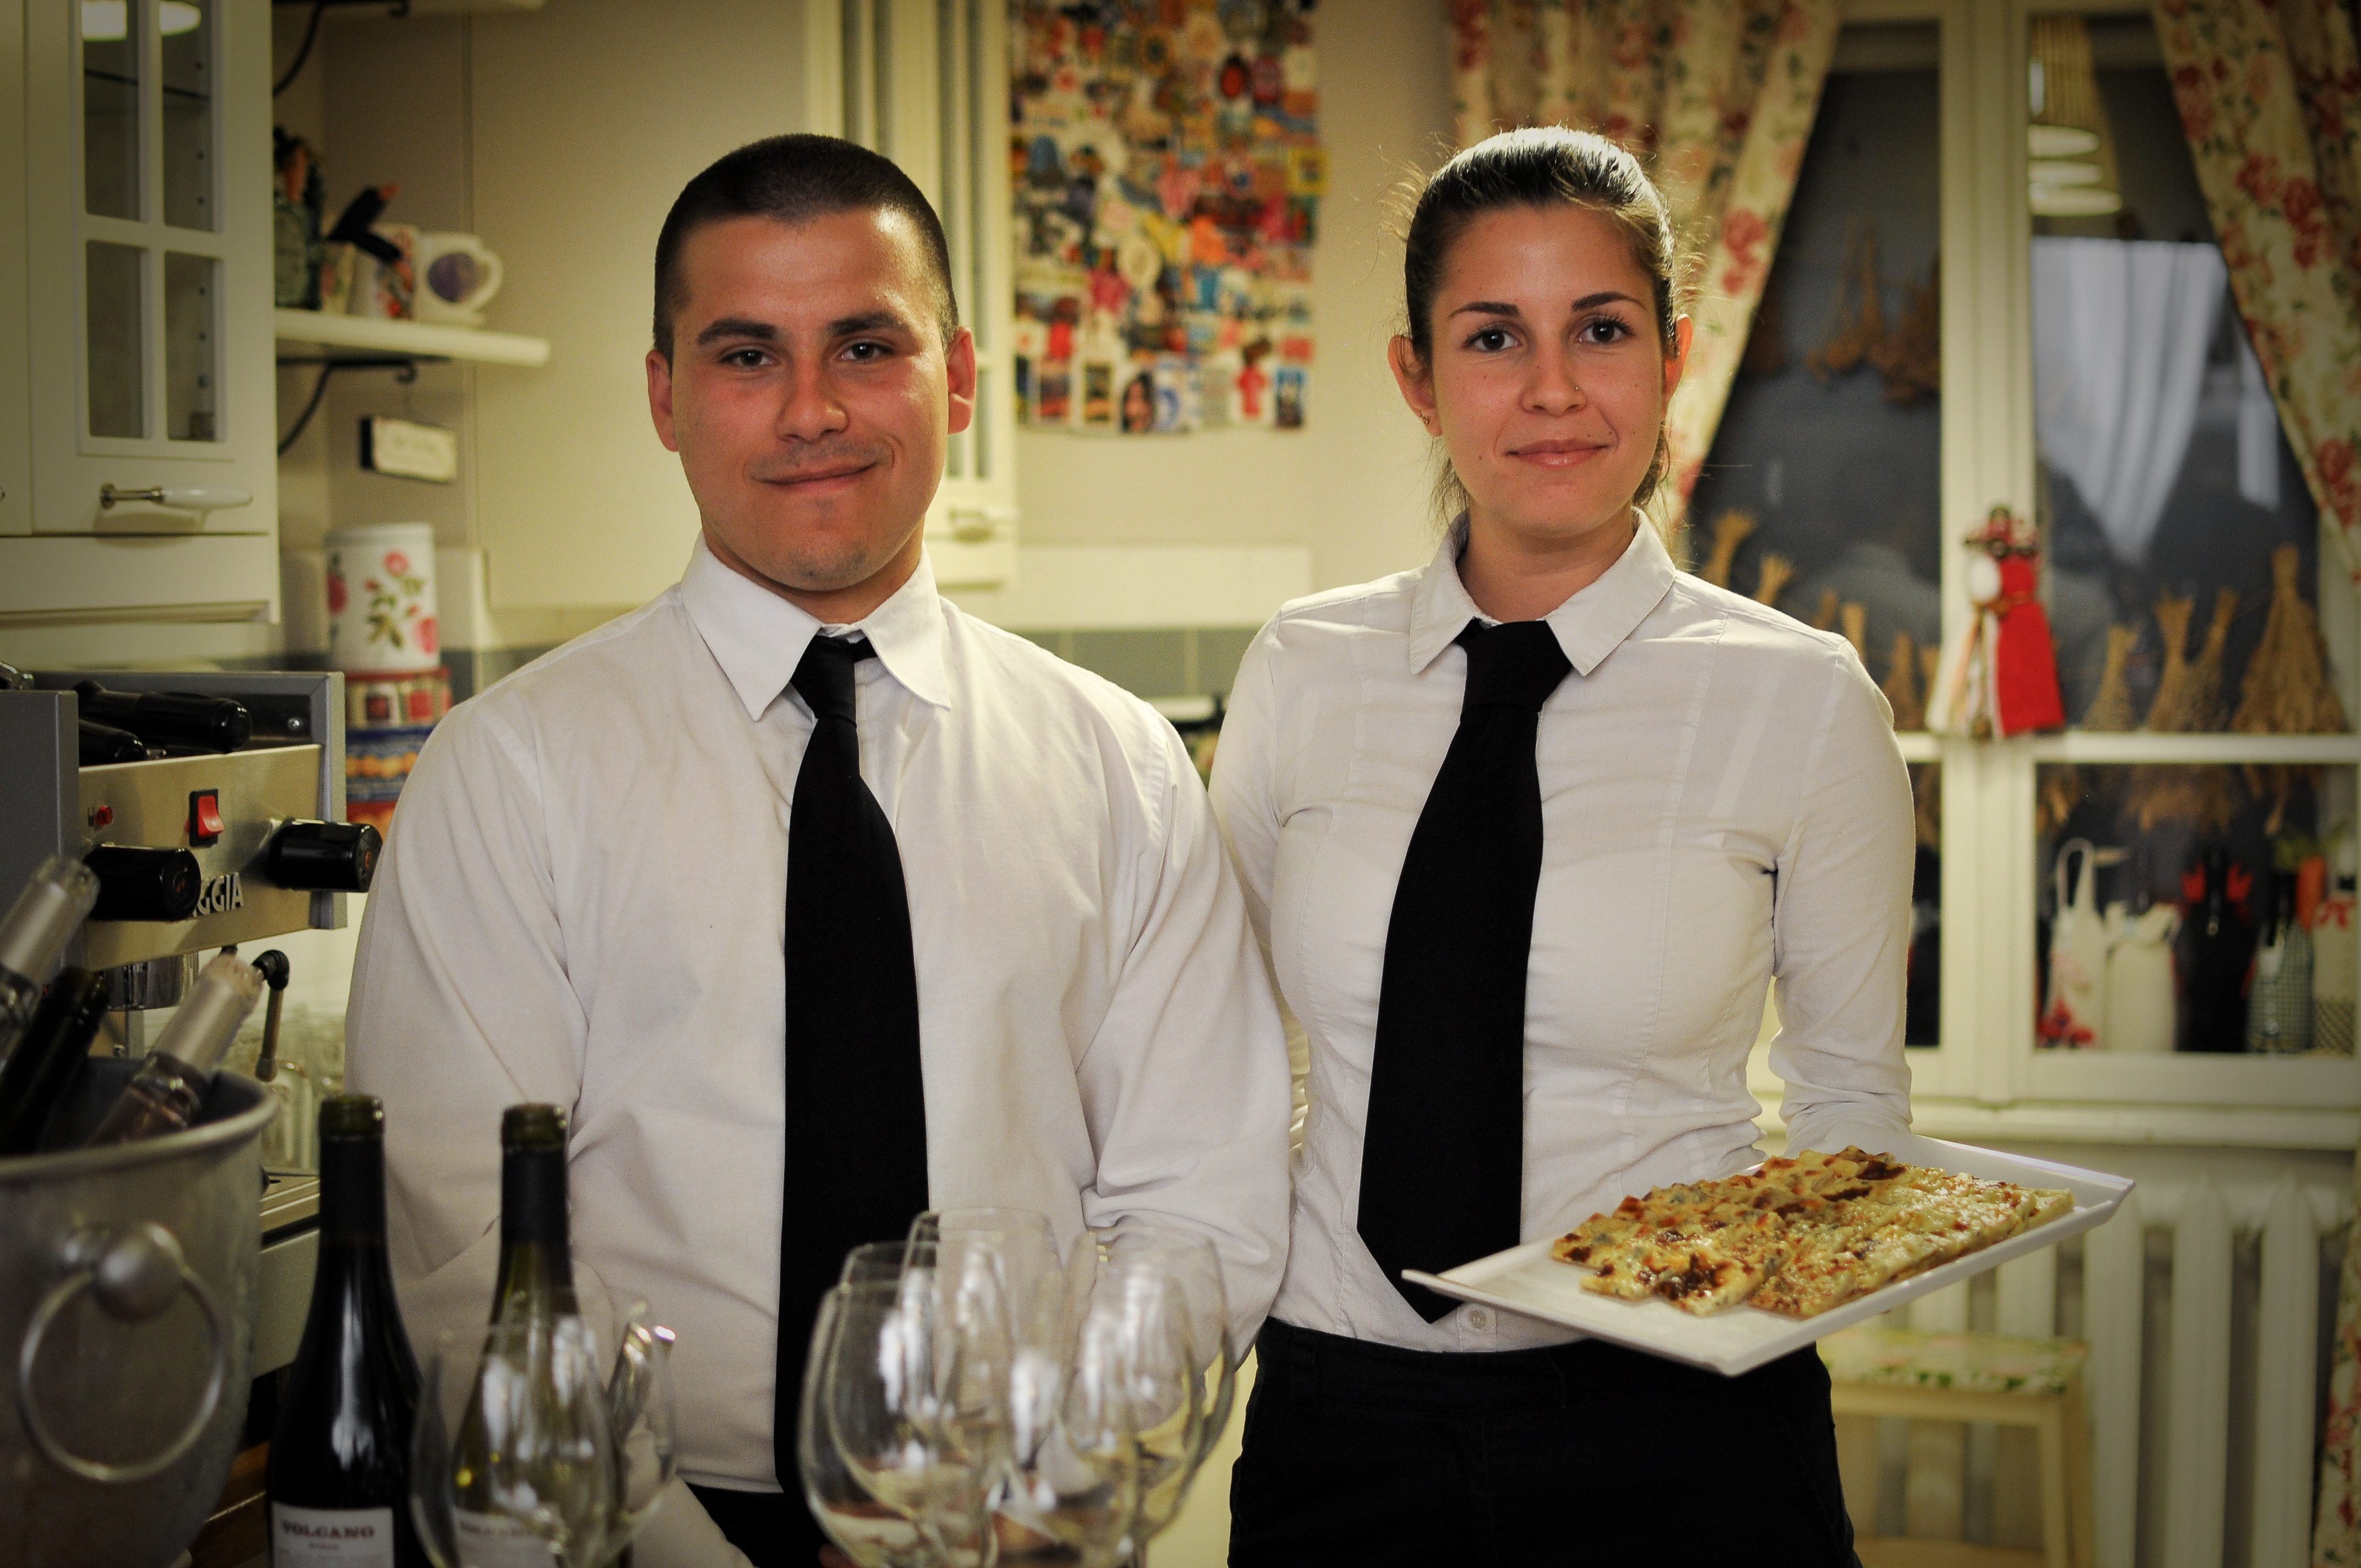 Catering angels